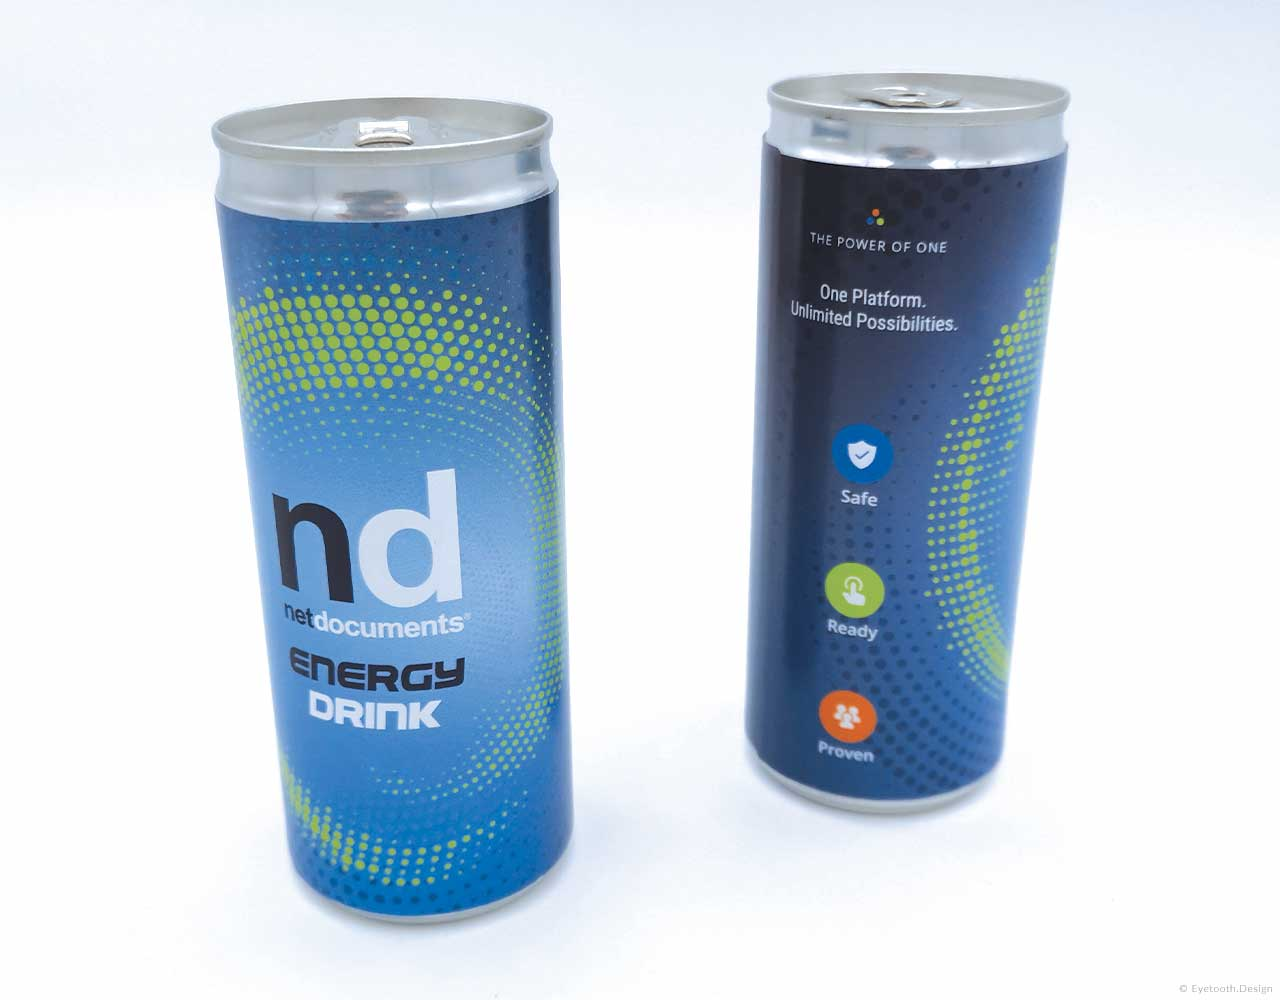 Energy drink product packaging